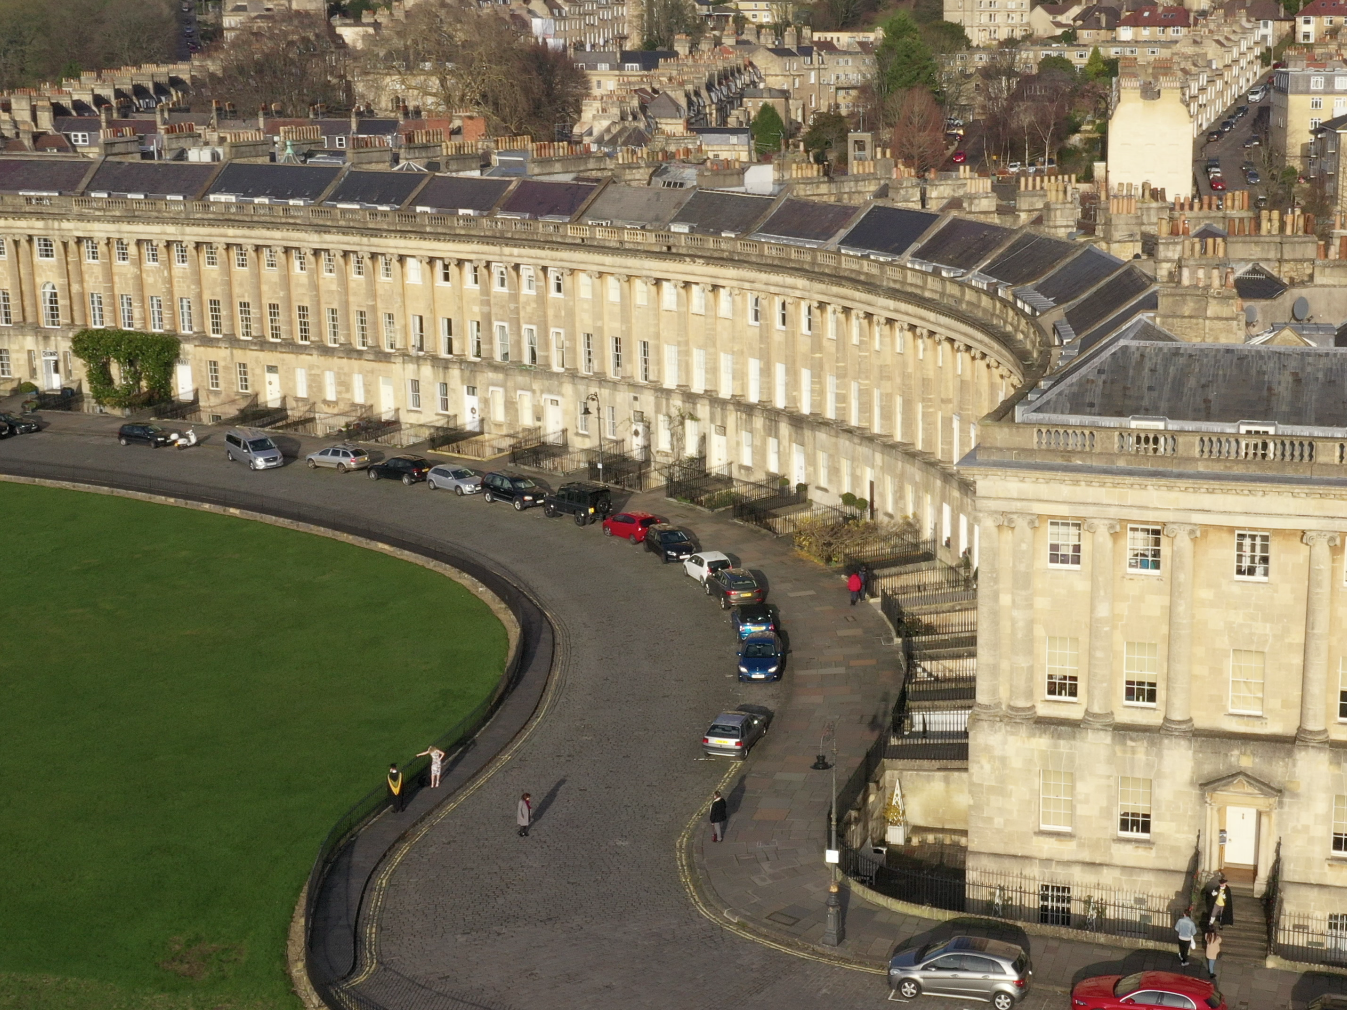 The Royal Crescent, the iconic landmark of Bath.  It forms a perfect half-moon shape around its gardens.